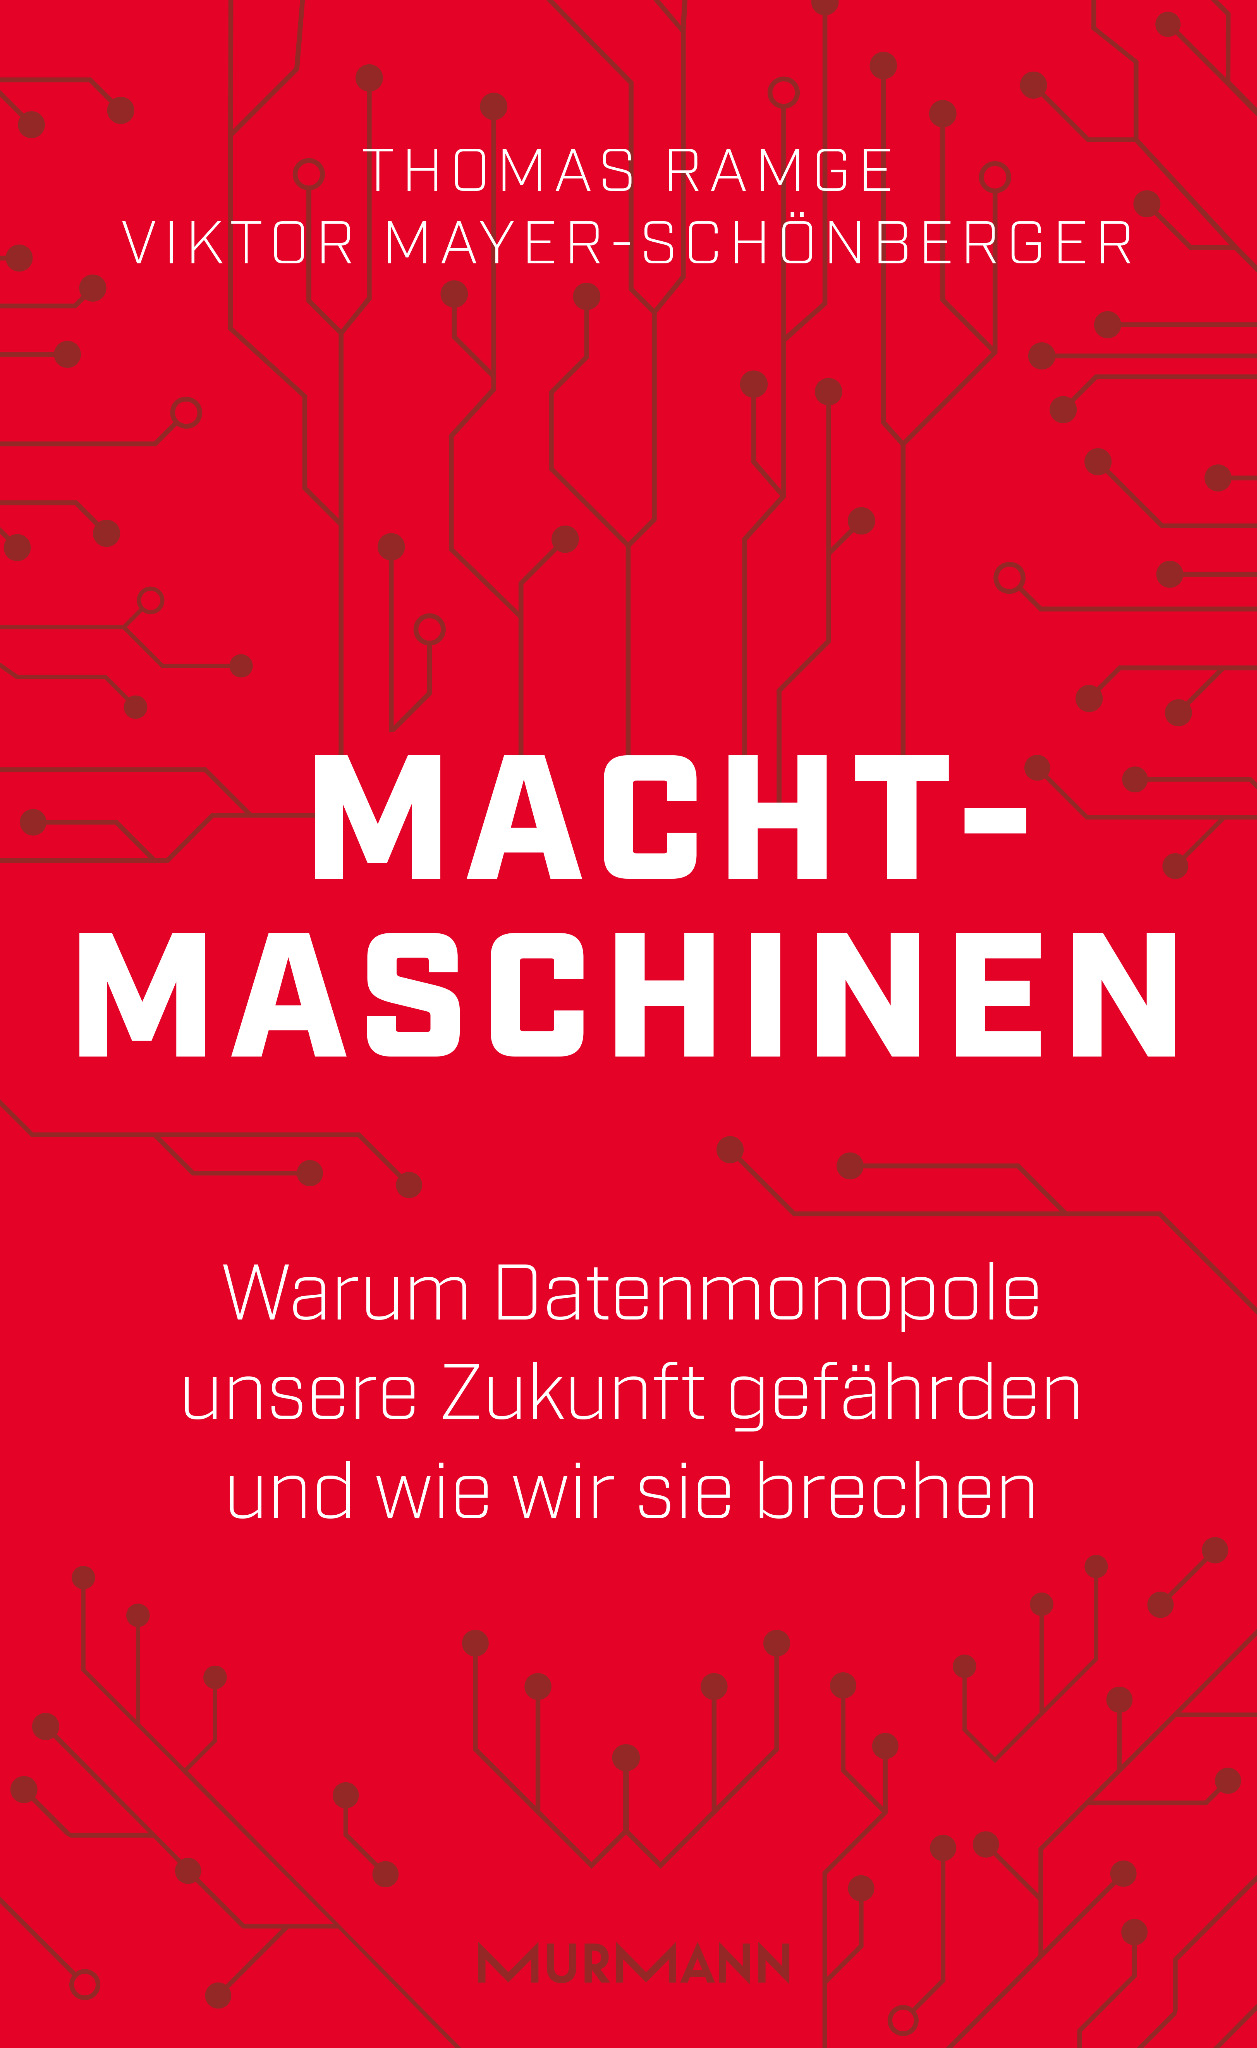 Machtmaschinen / Thomas Ramge, Viktor Mayer-Schönberger (E-Book)